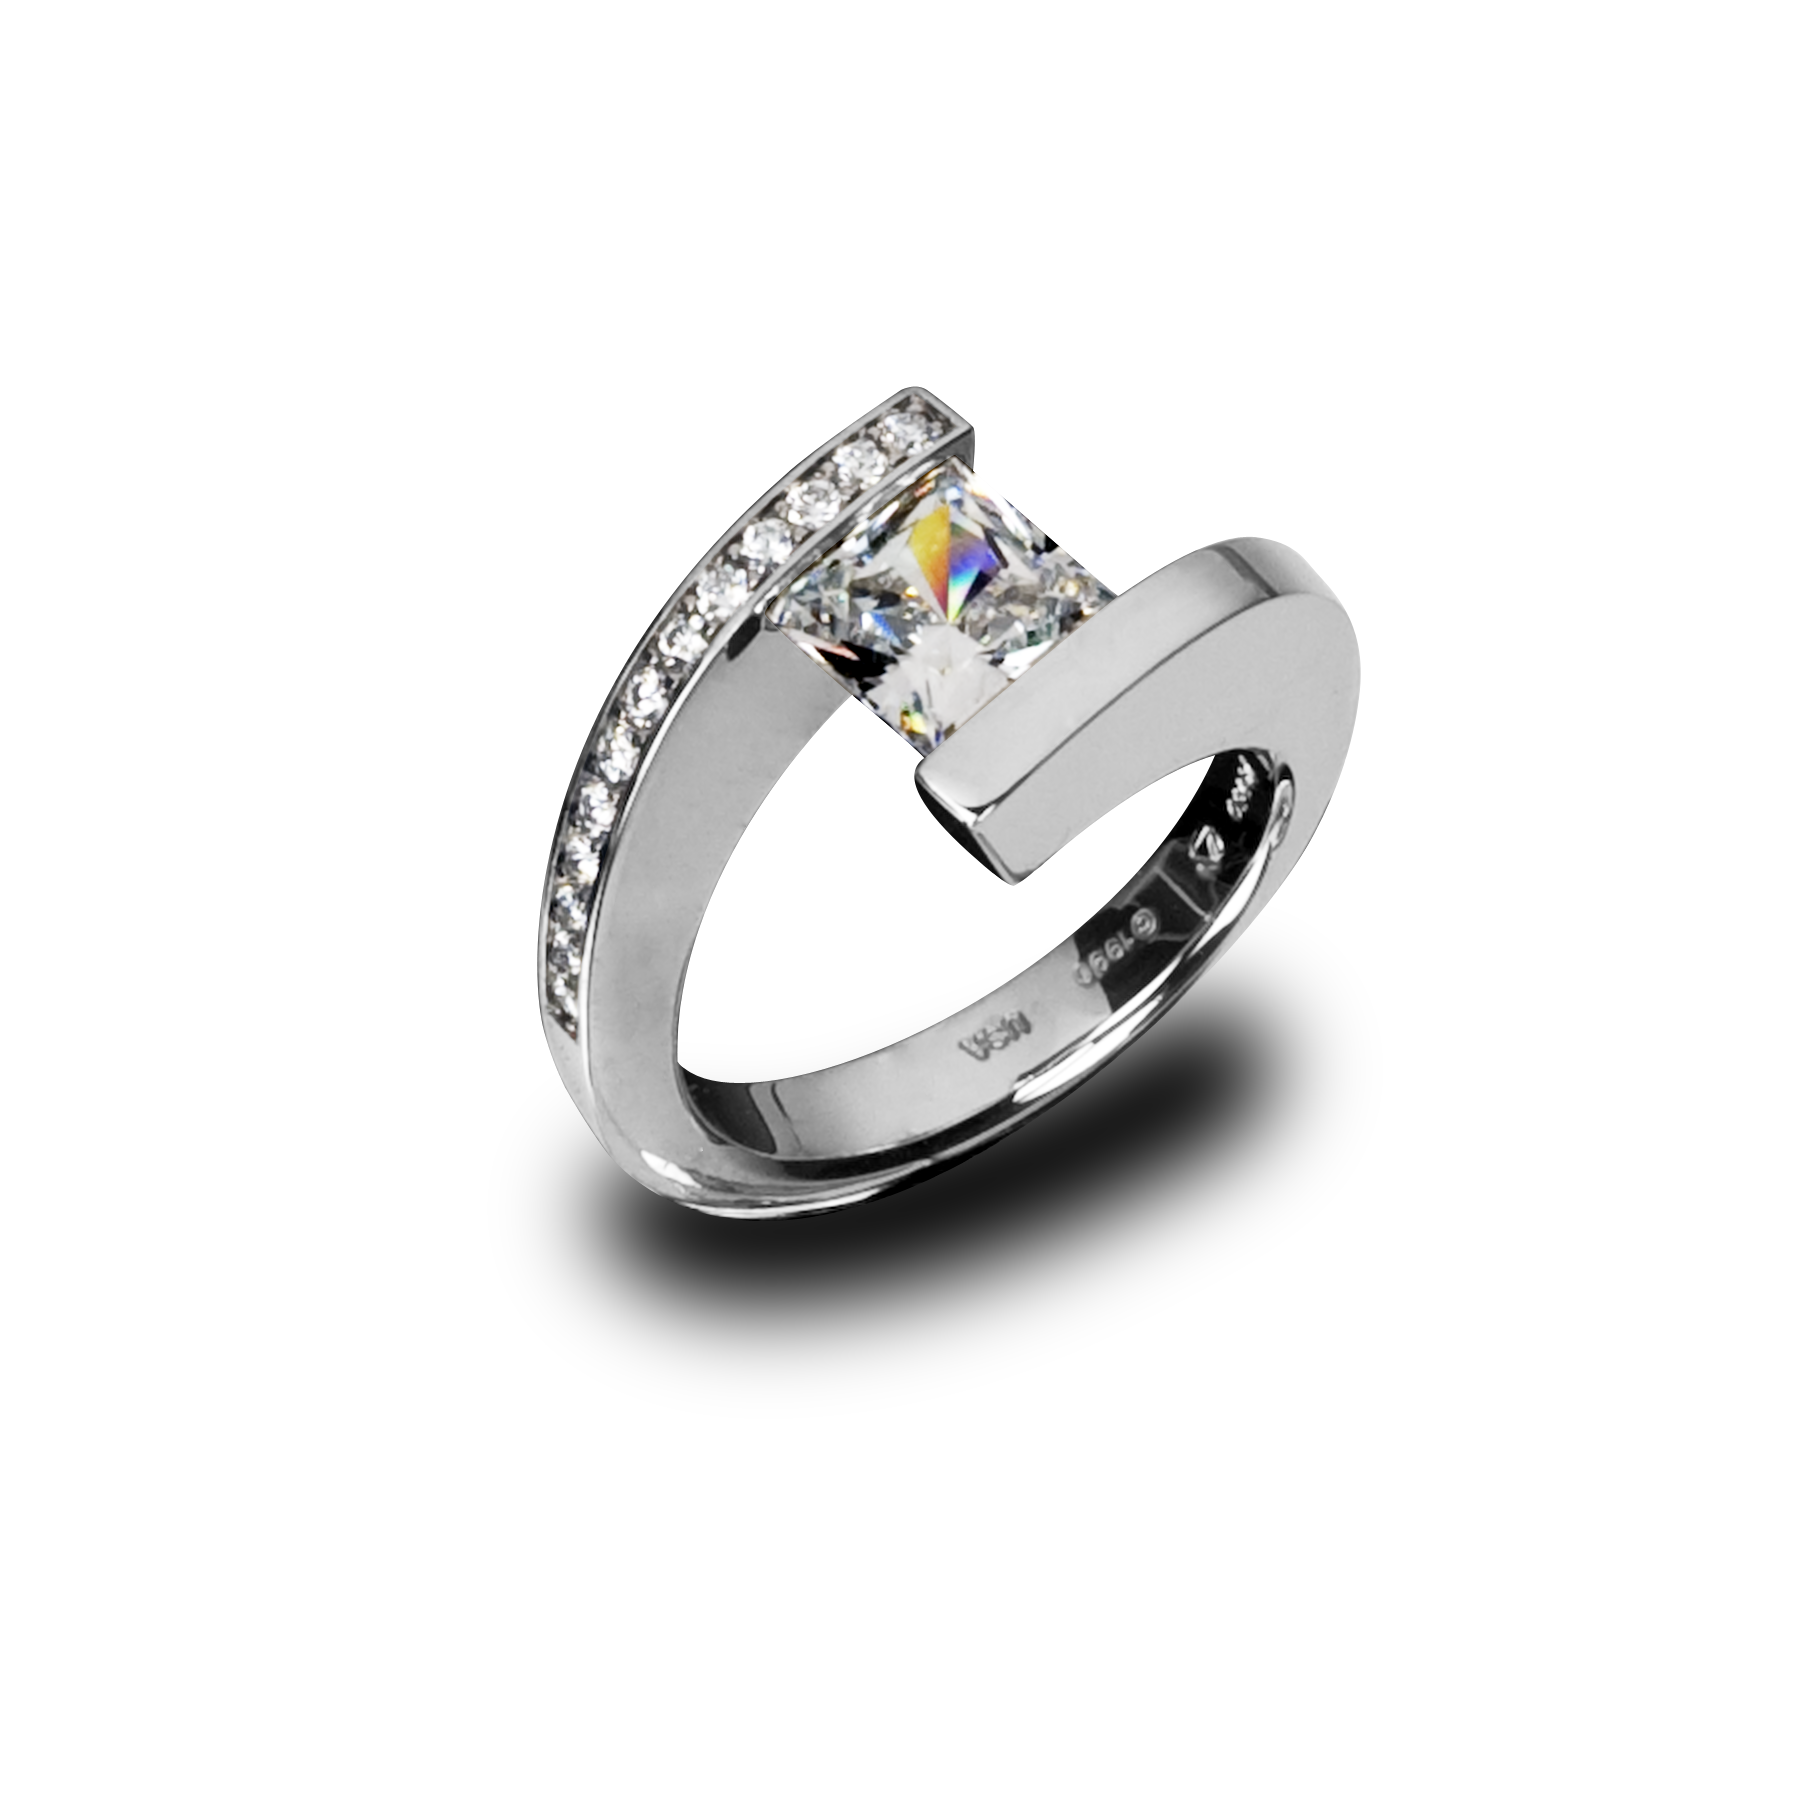 rings engagement mirell titanium ring diamond jolie set edward d tension